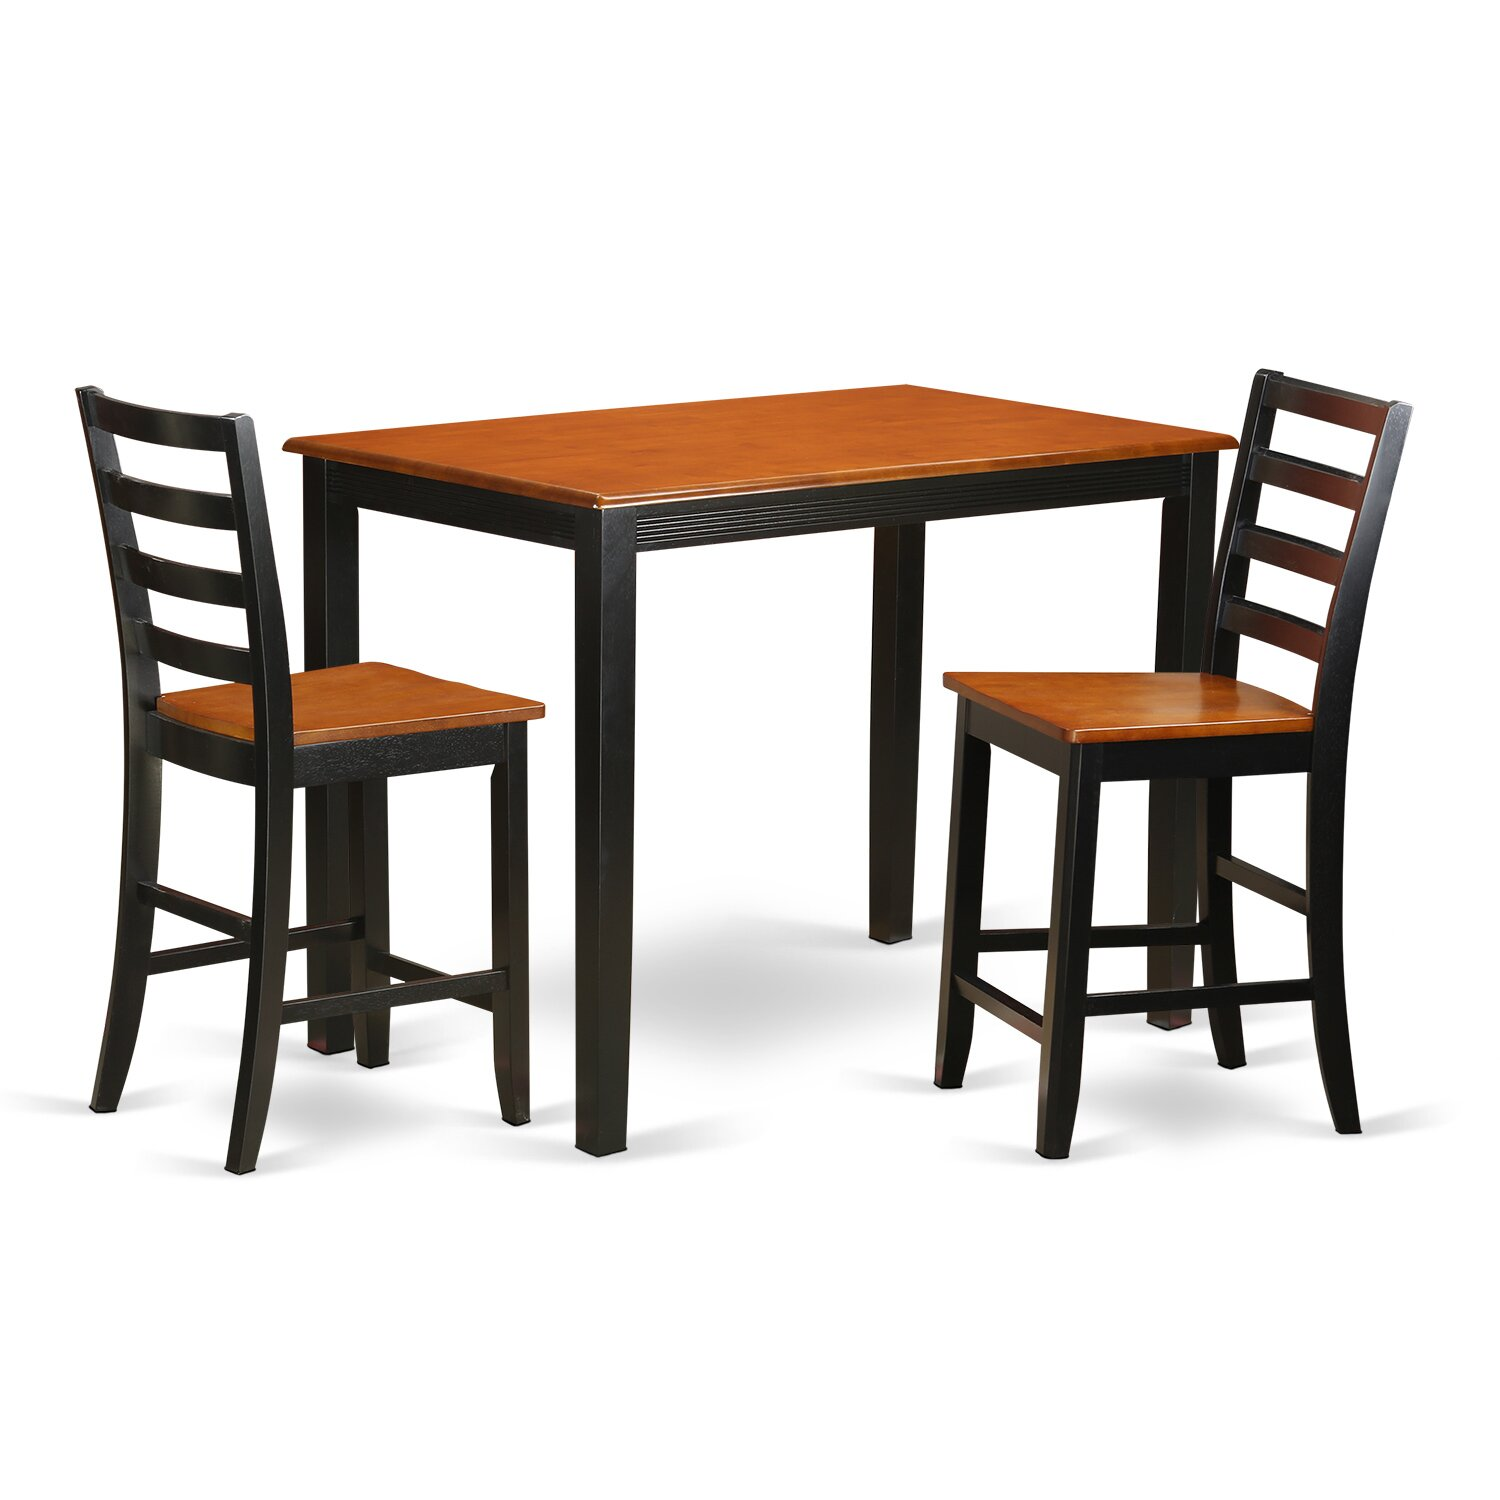 Wooden importers yarmouth 3 piece counter height pub table for Kitchen table and stools set